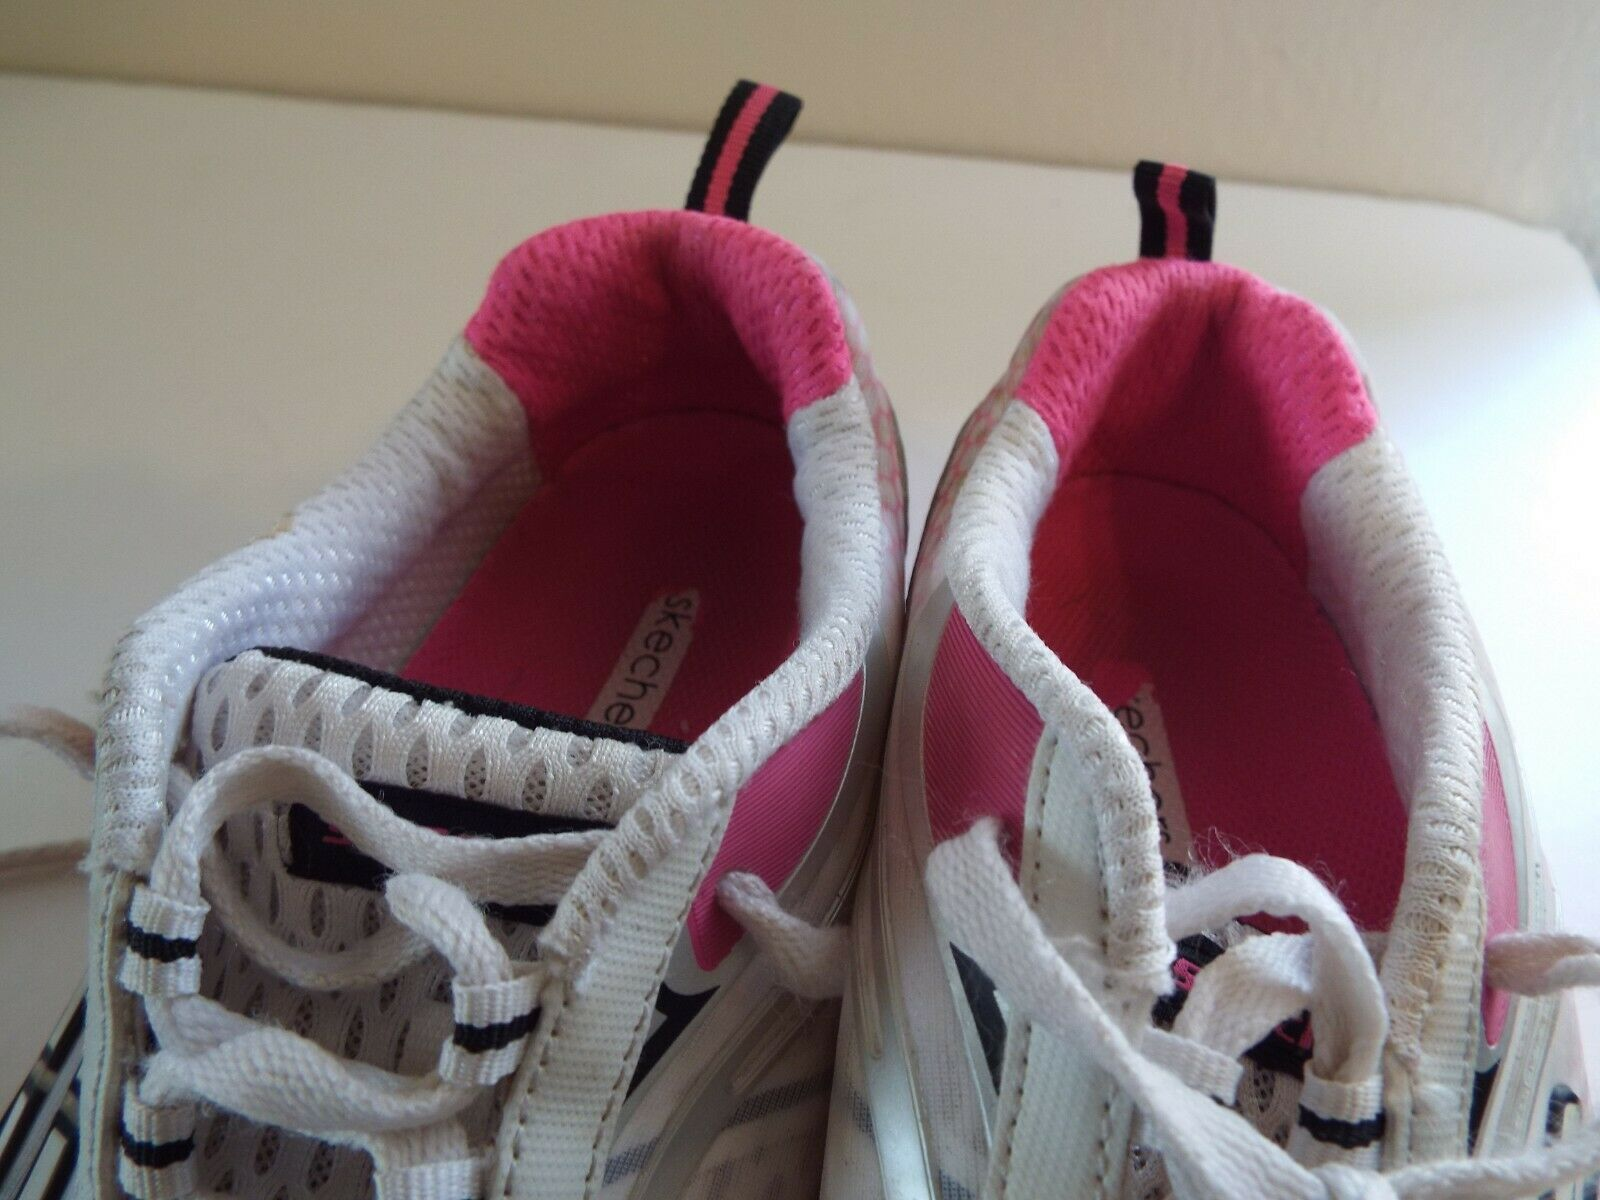 Skechers Flex 8 Women Sneakers Pink and White image 6